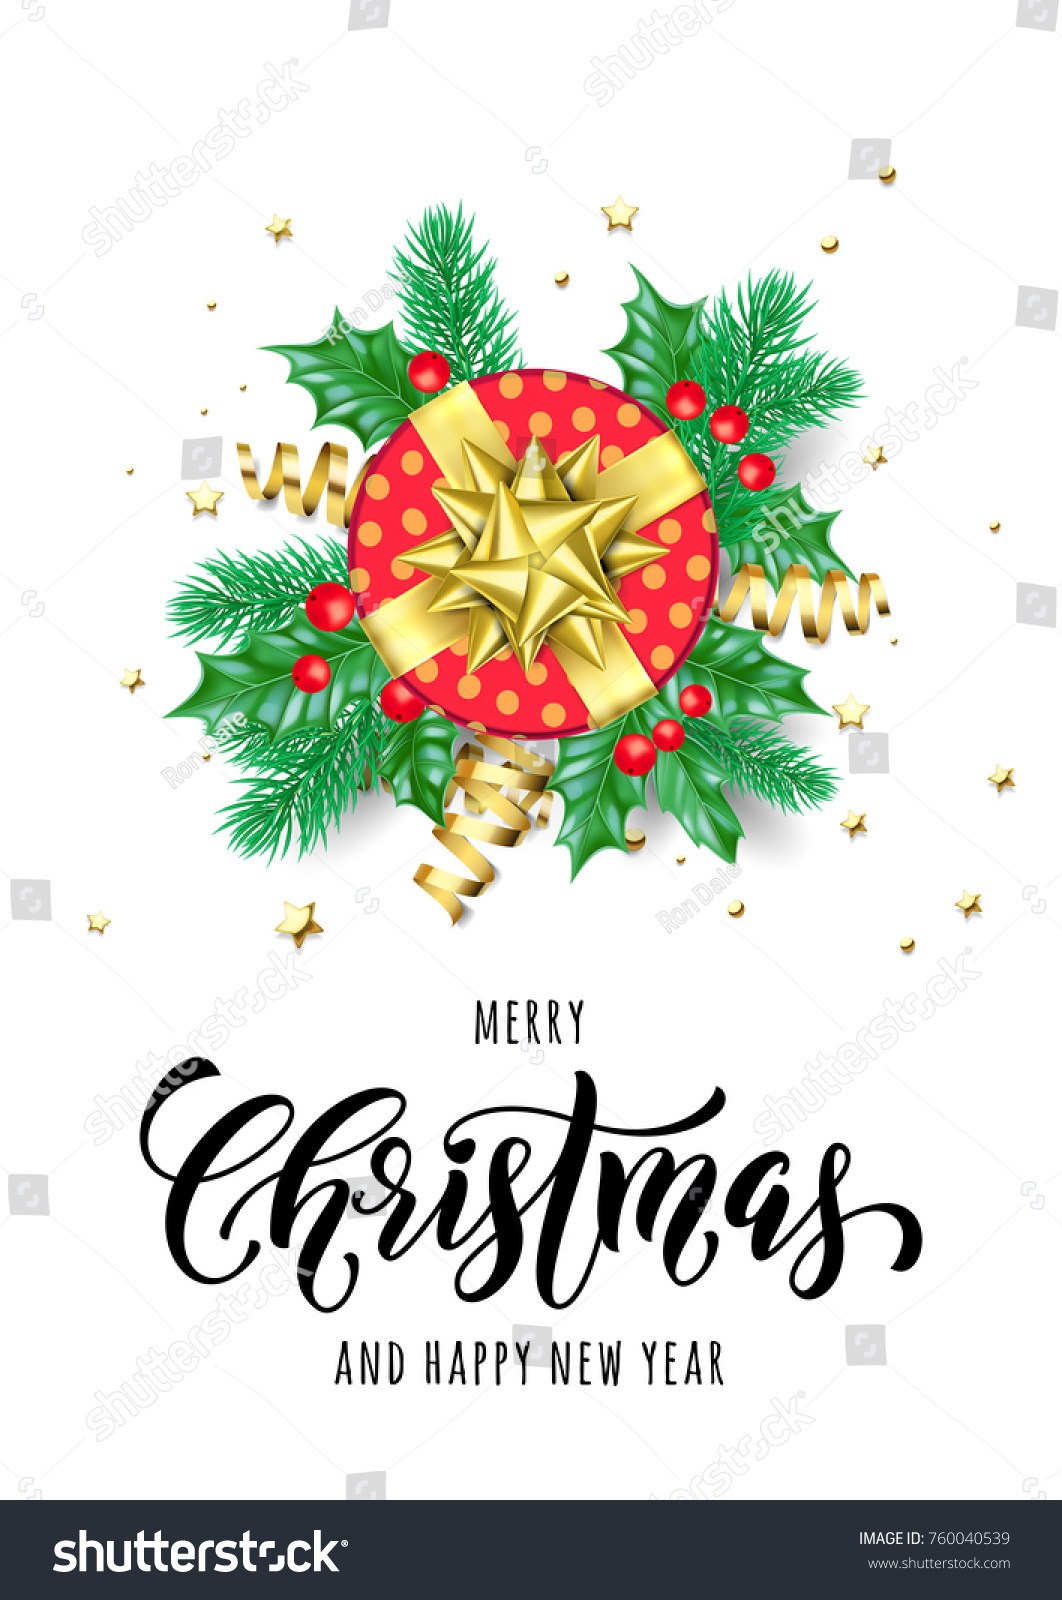 Merry Christmas And Happy New Year Hand Drawn Quote Calligraphy For